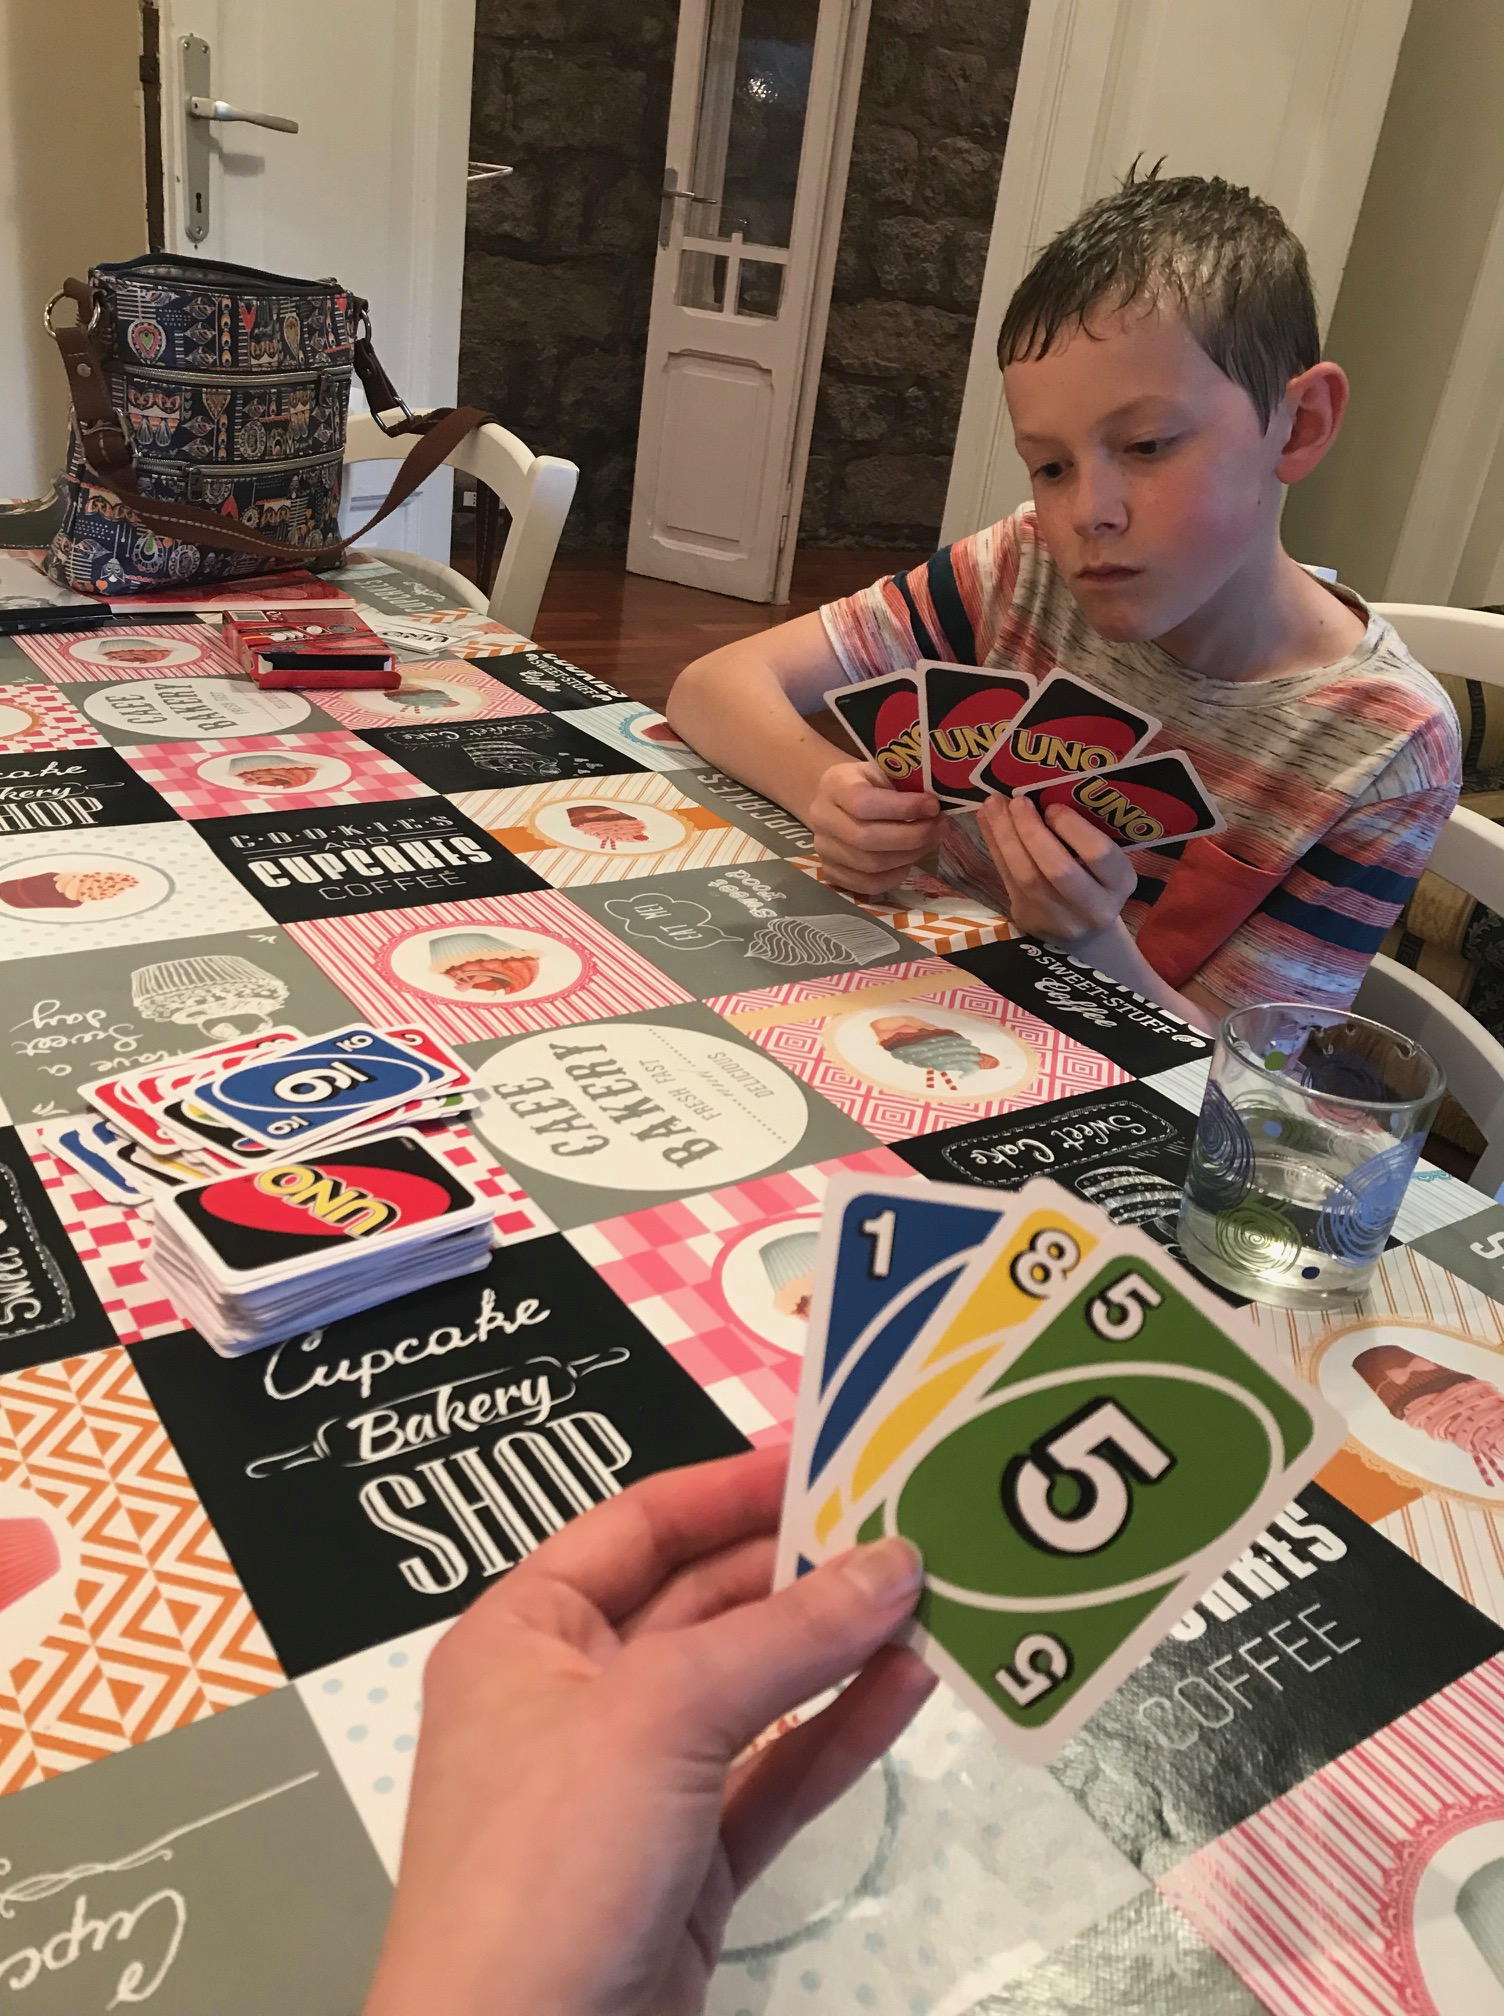 A boy playing Uno at a kitchen table